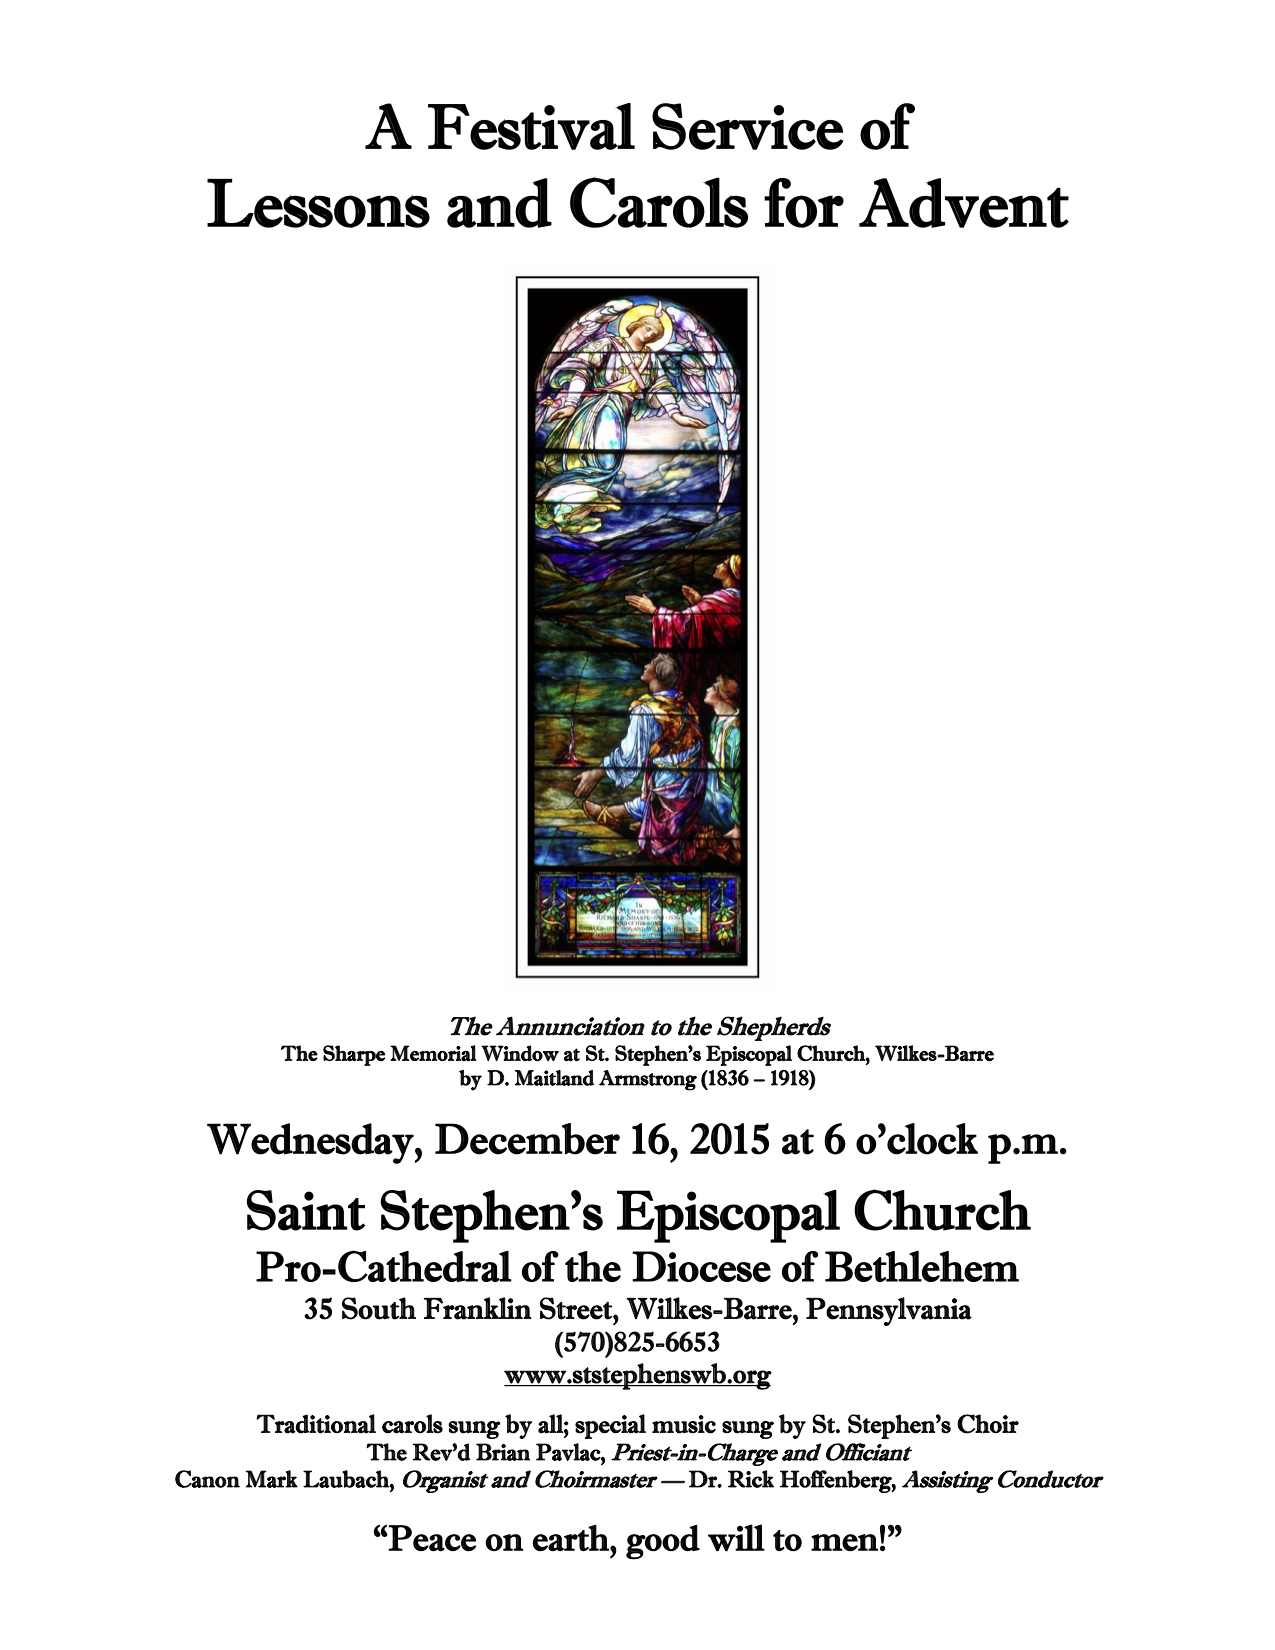 Lessons and Carols around the Pennsylvania Northeast